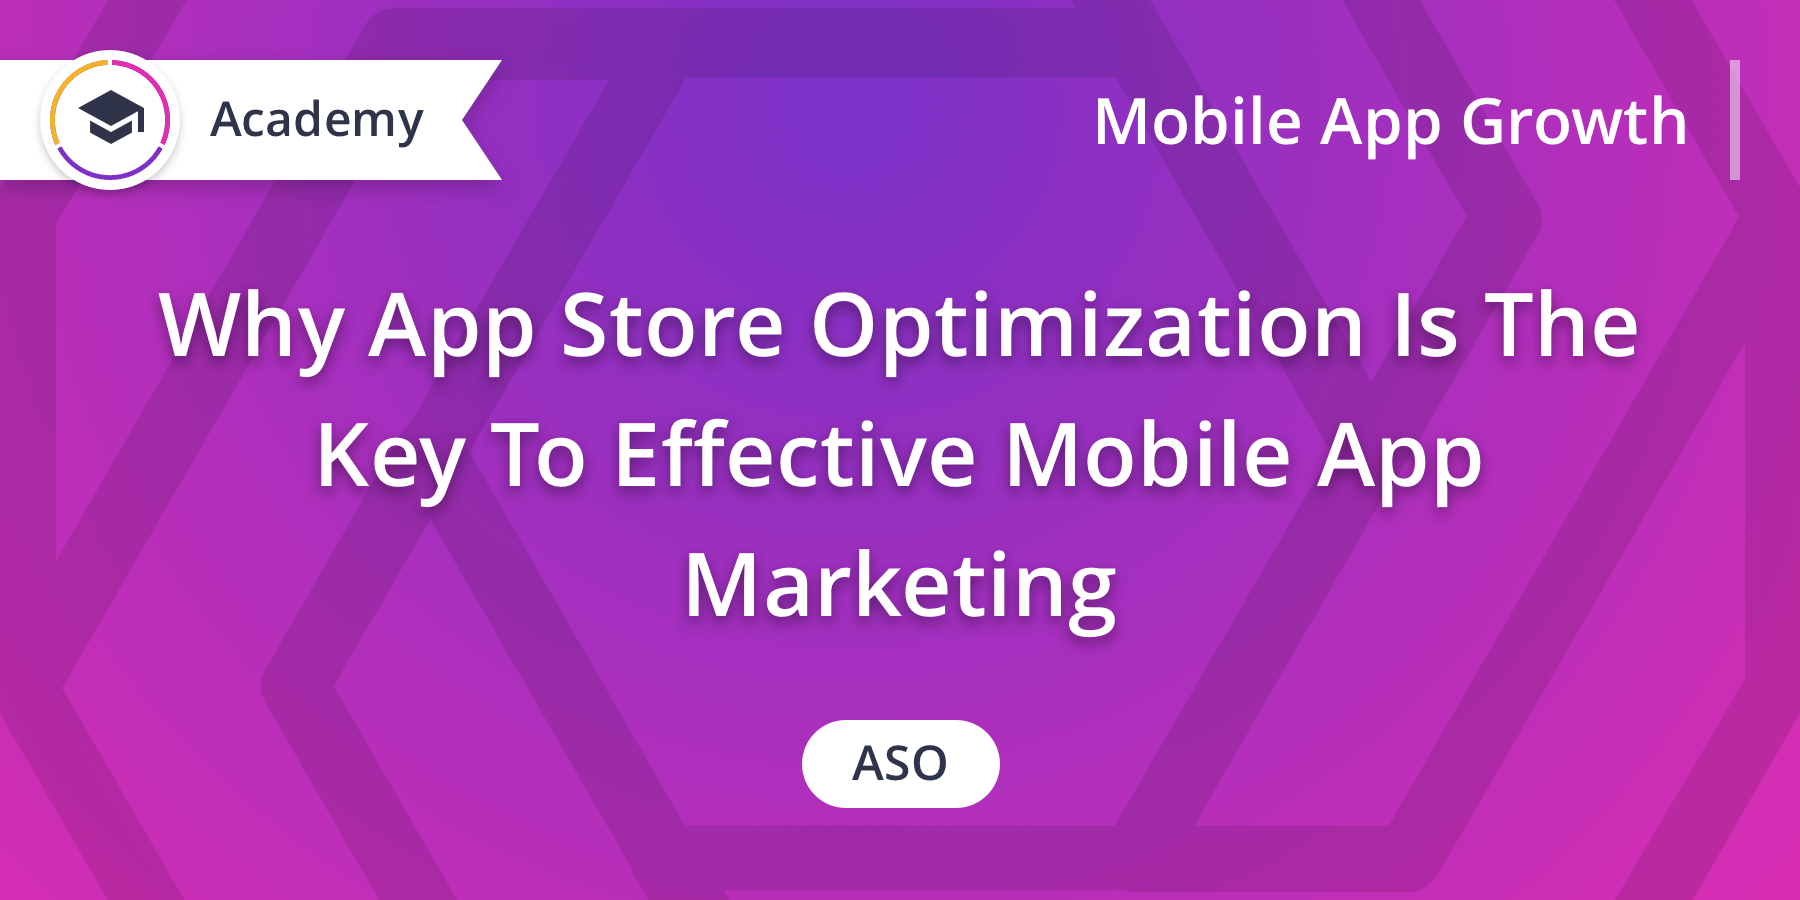 How Does App Store Optimization Work In Successful Mobile App Marketing Campaigns?